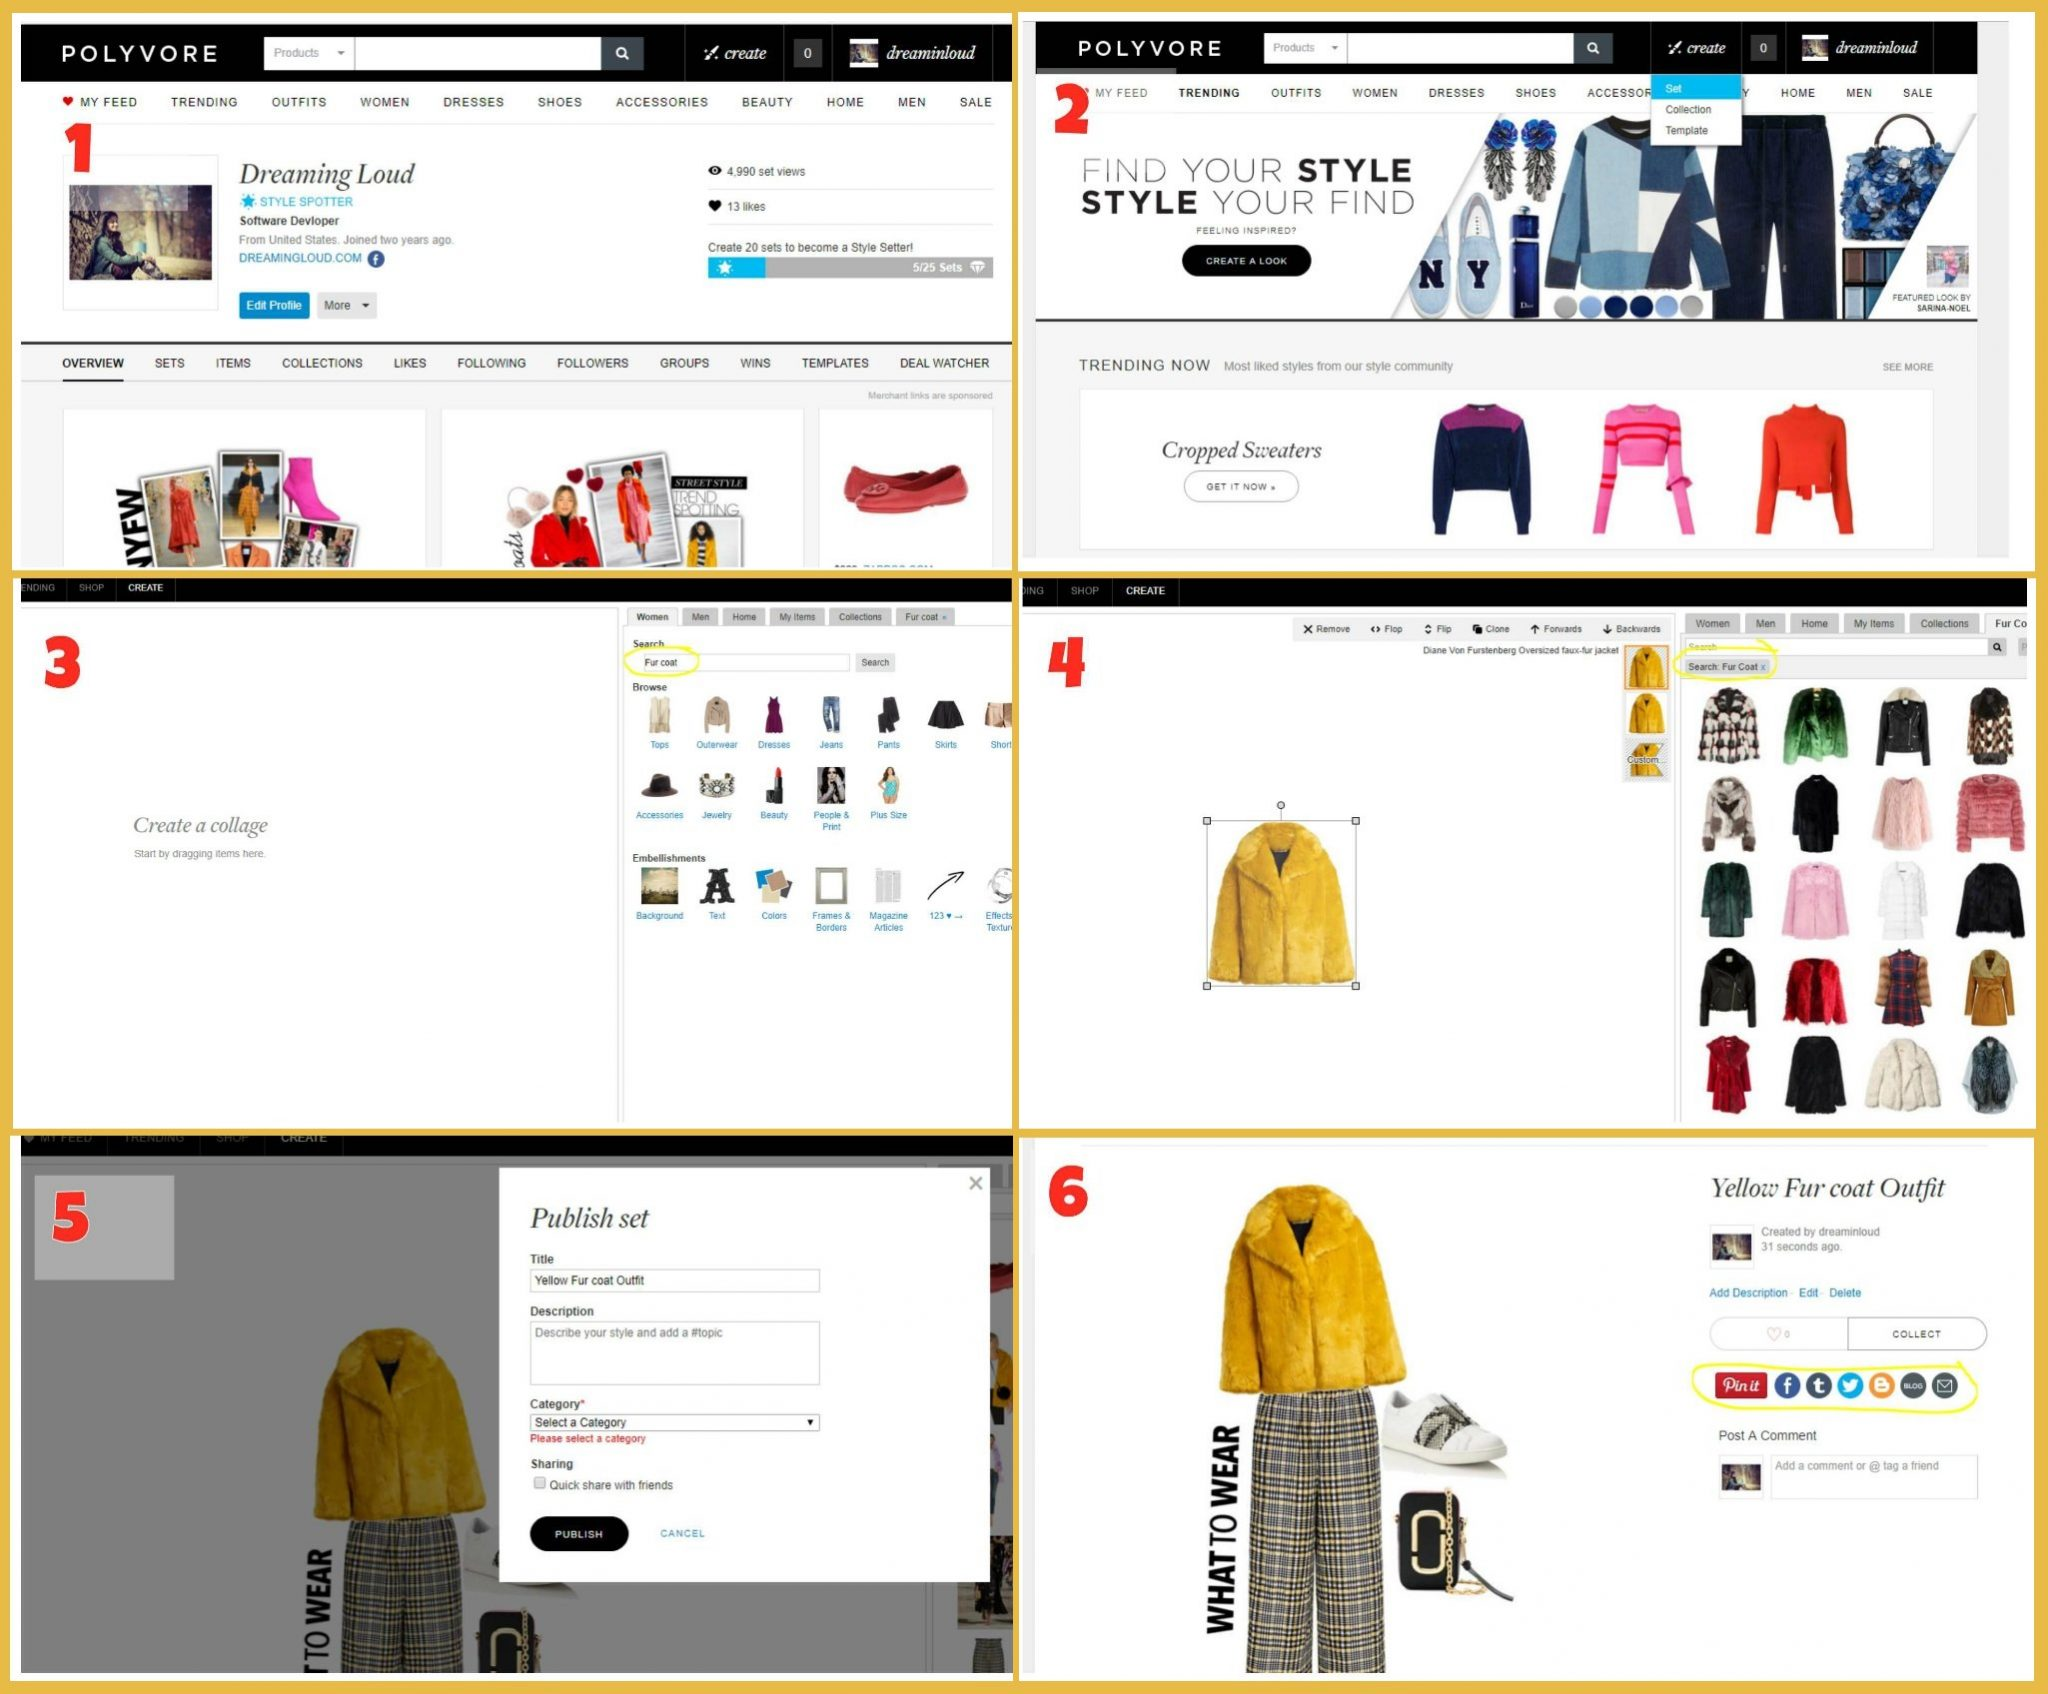 Lifestyle Blog Dreaming Loud sharing how to create sets or collages on Polyvore | How to Use Polyvore featured by popular Ohio modest fashion blogger, Dreaming Loud